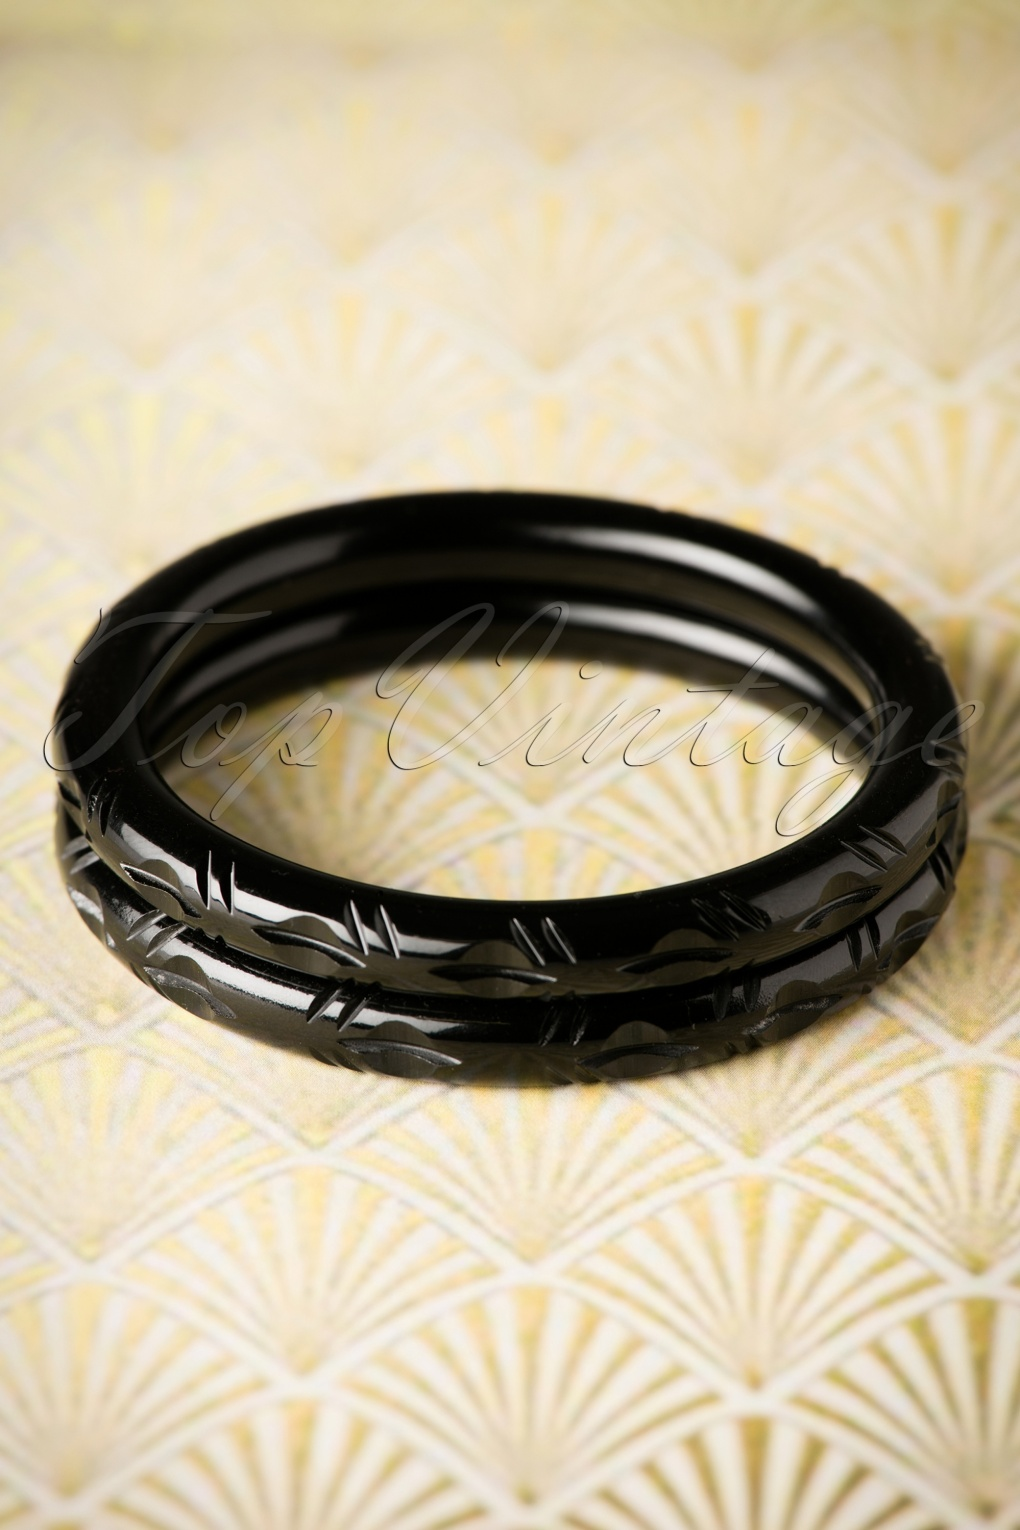 Vintage Style Jewelry, Retro Jewelry 20s Abigail Carved Bangles Set in Black £11.36 AT vintagedancer.com